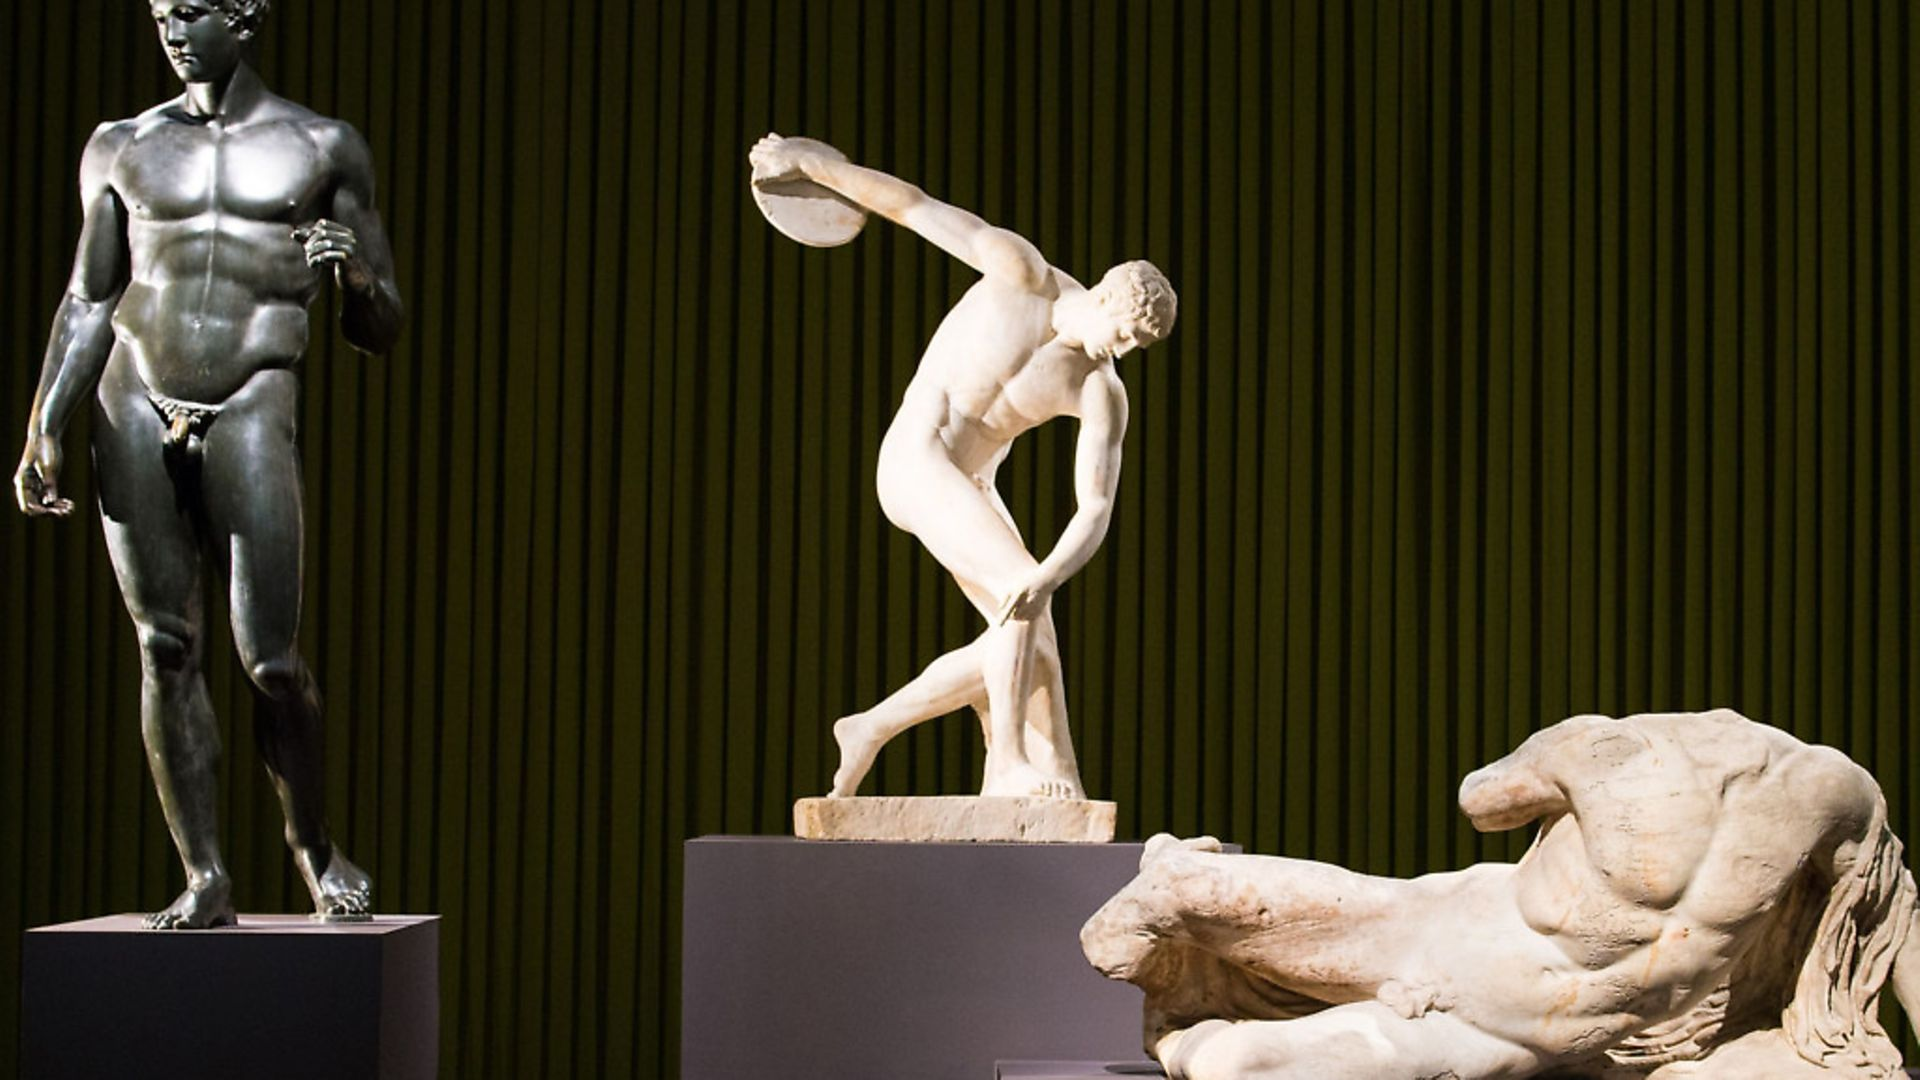 Sculptures in the Ancient Greek Art exhibition at the British Museum including 'Discobolus' (Discus Thrower). Sophia Deboick explores how music as we know it began in 440 BC. Picture:  Dominic Lipinski/PA Archive/PA Images - Credit: PA Archive/PA Images